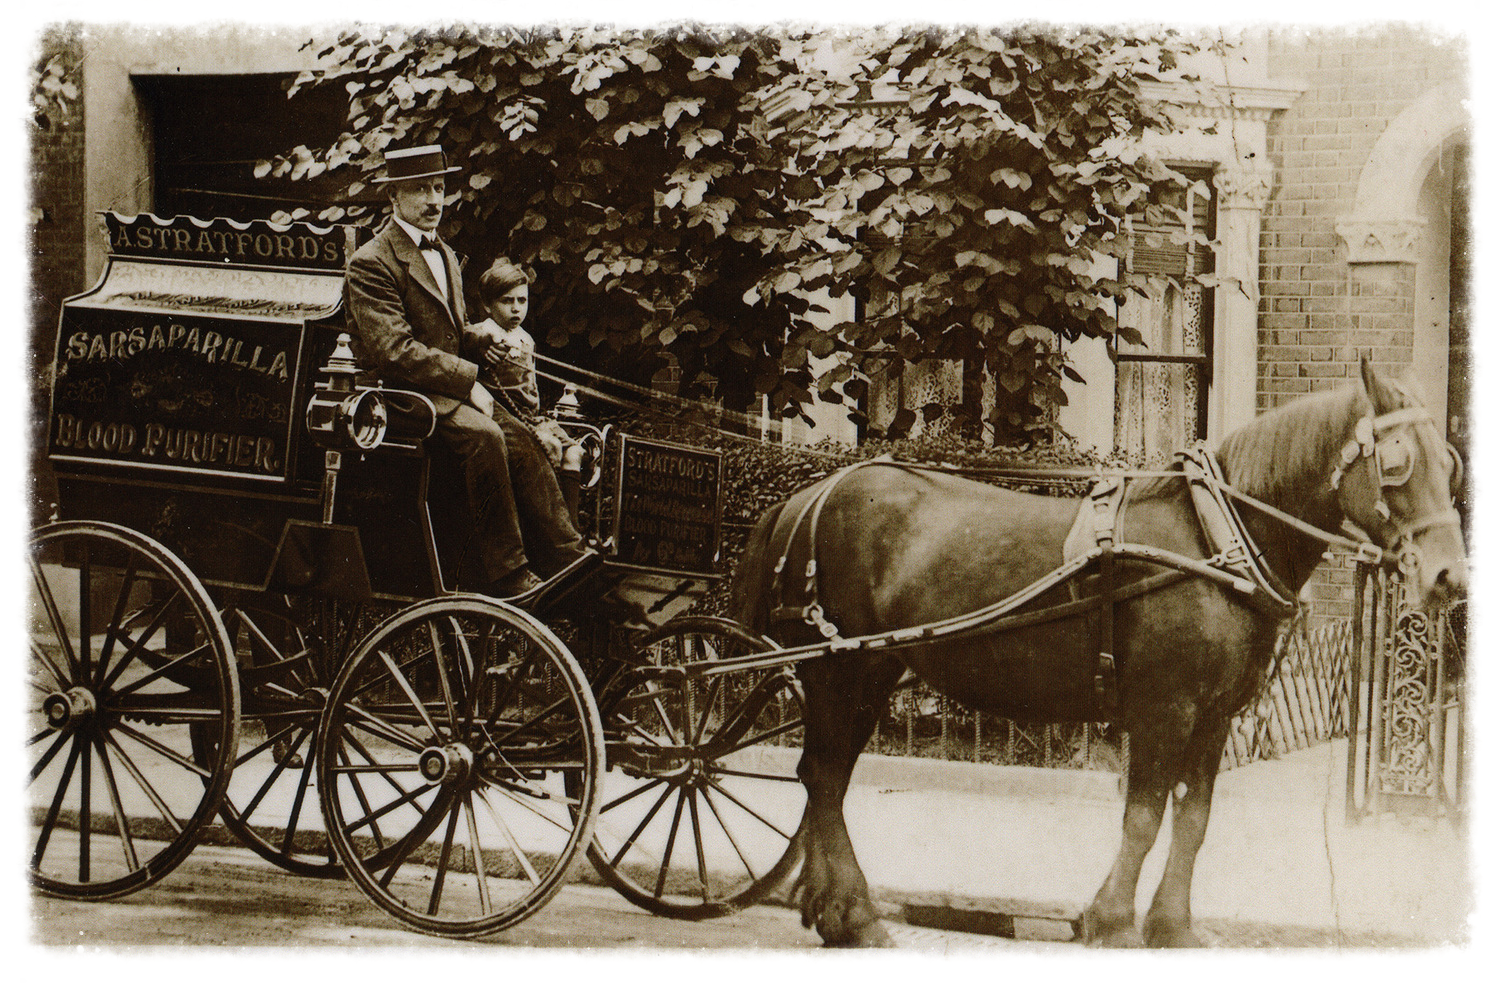 Sarsaparilla delivery horse and cart.